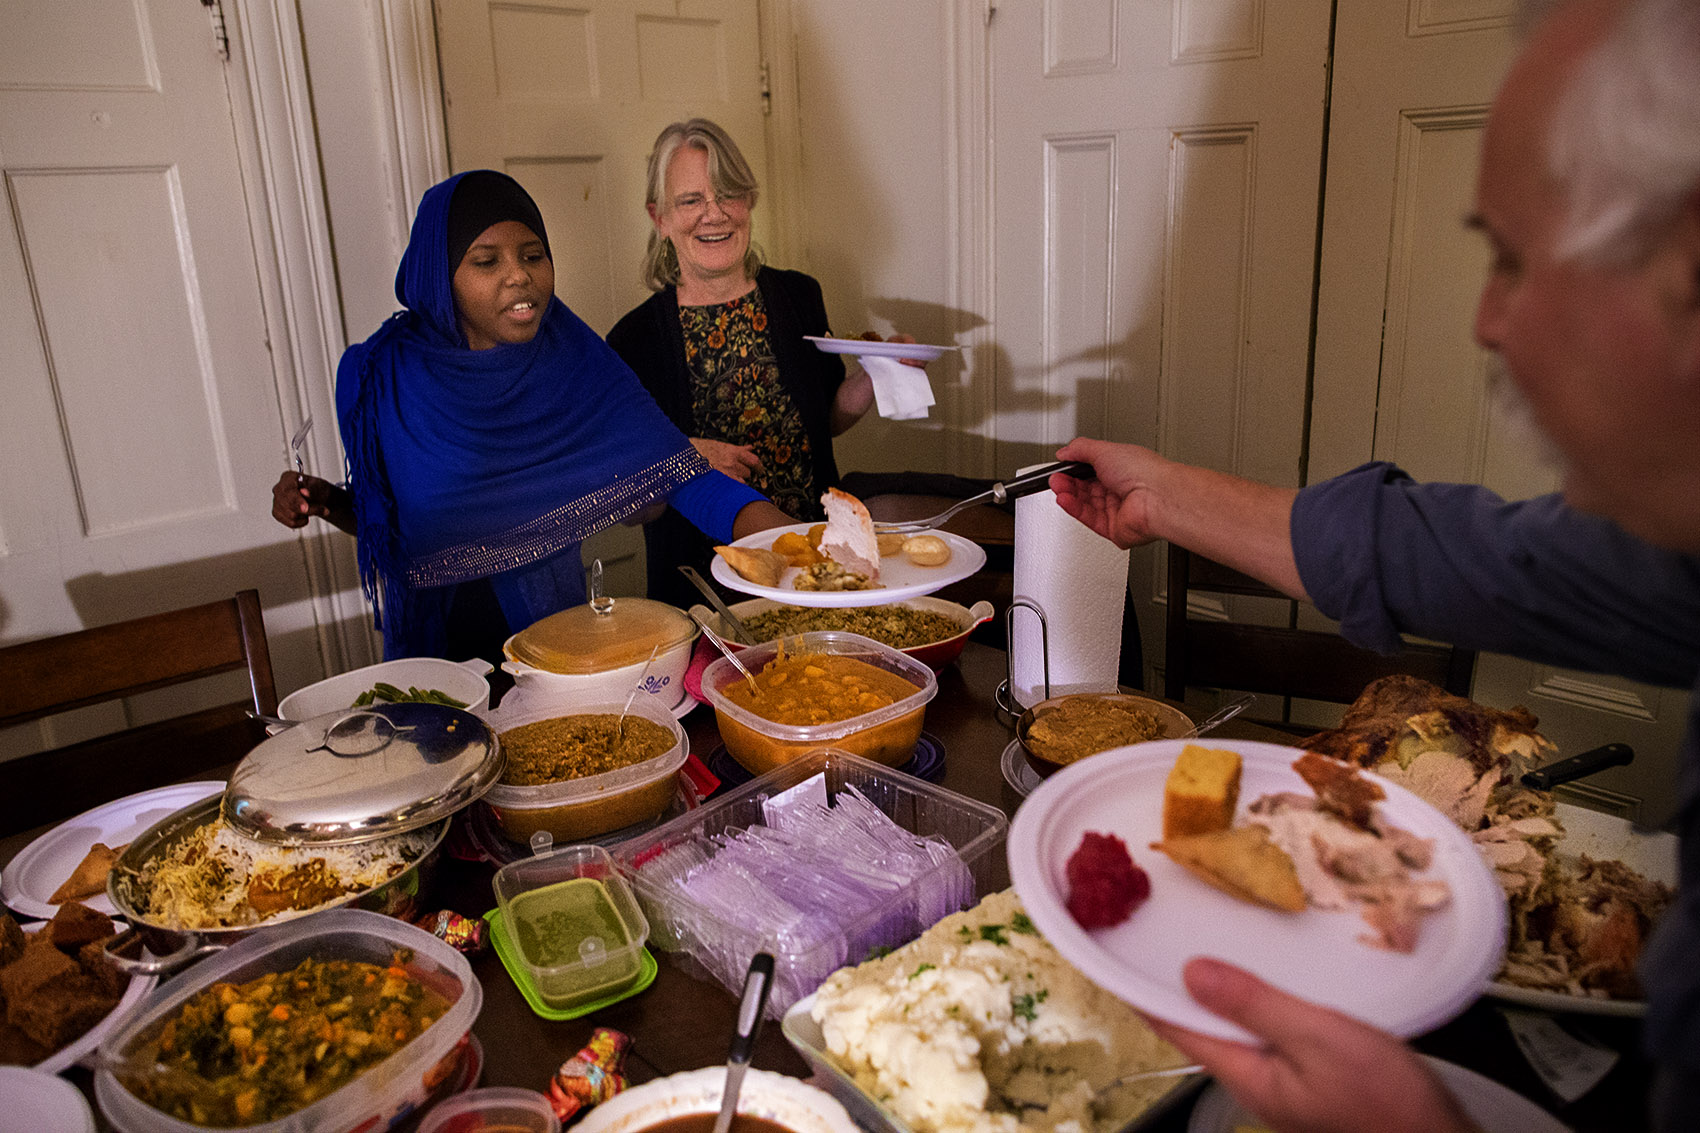 Dan Chernoff serves Asha Ahmed her very first slice of Thanksgiving turkey. Refugees from Somalia, this is the Ahmed family's first Thanksgiving in the United States. (Jesse Costa/WBUR)